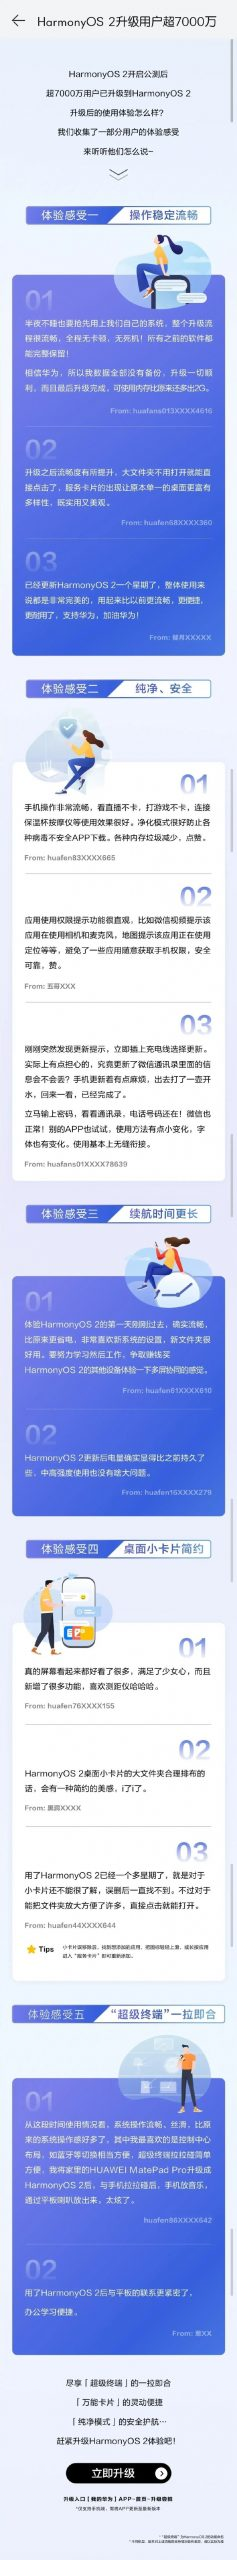 Huawei HarmonyOS users exceeded over 70 million